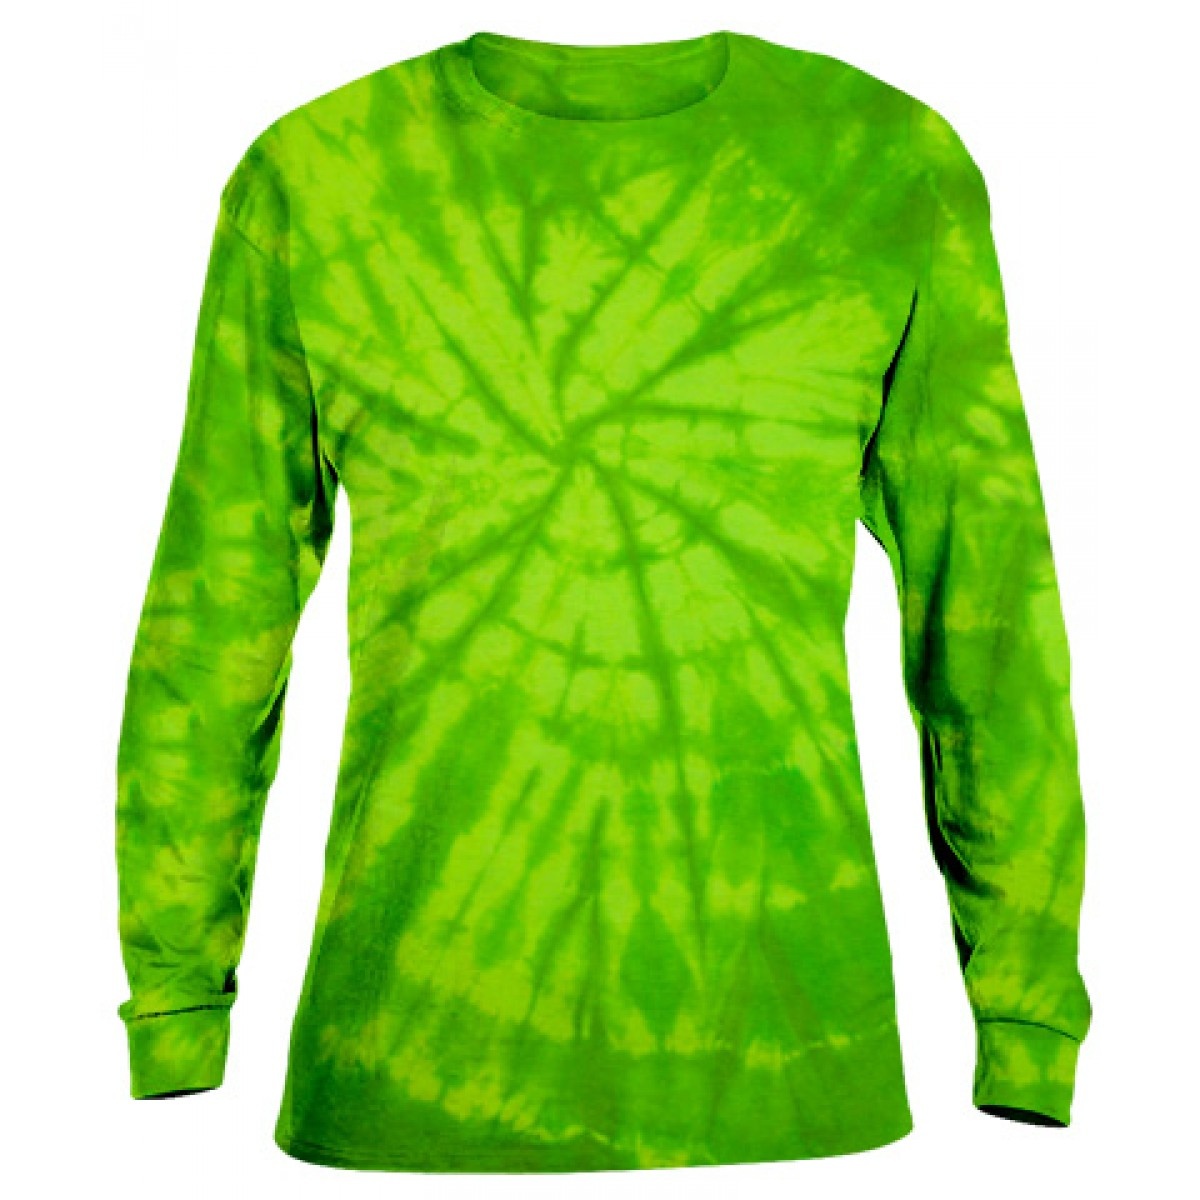 Tie-Dye Long Sleeve Shirt -Lime Green-L